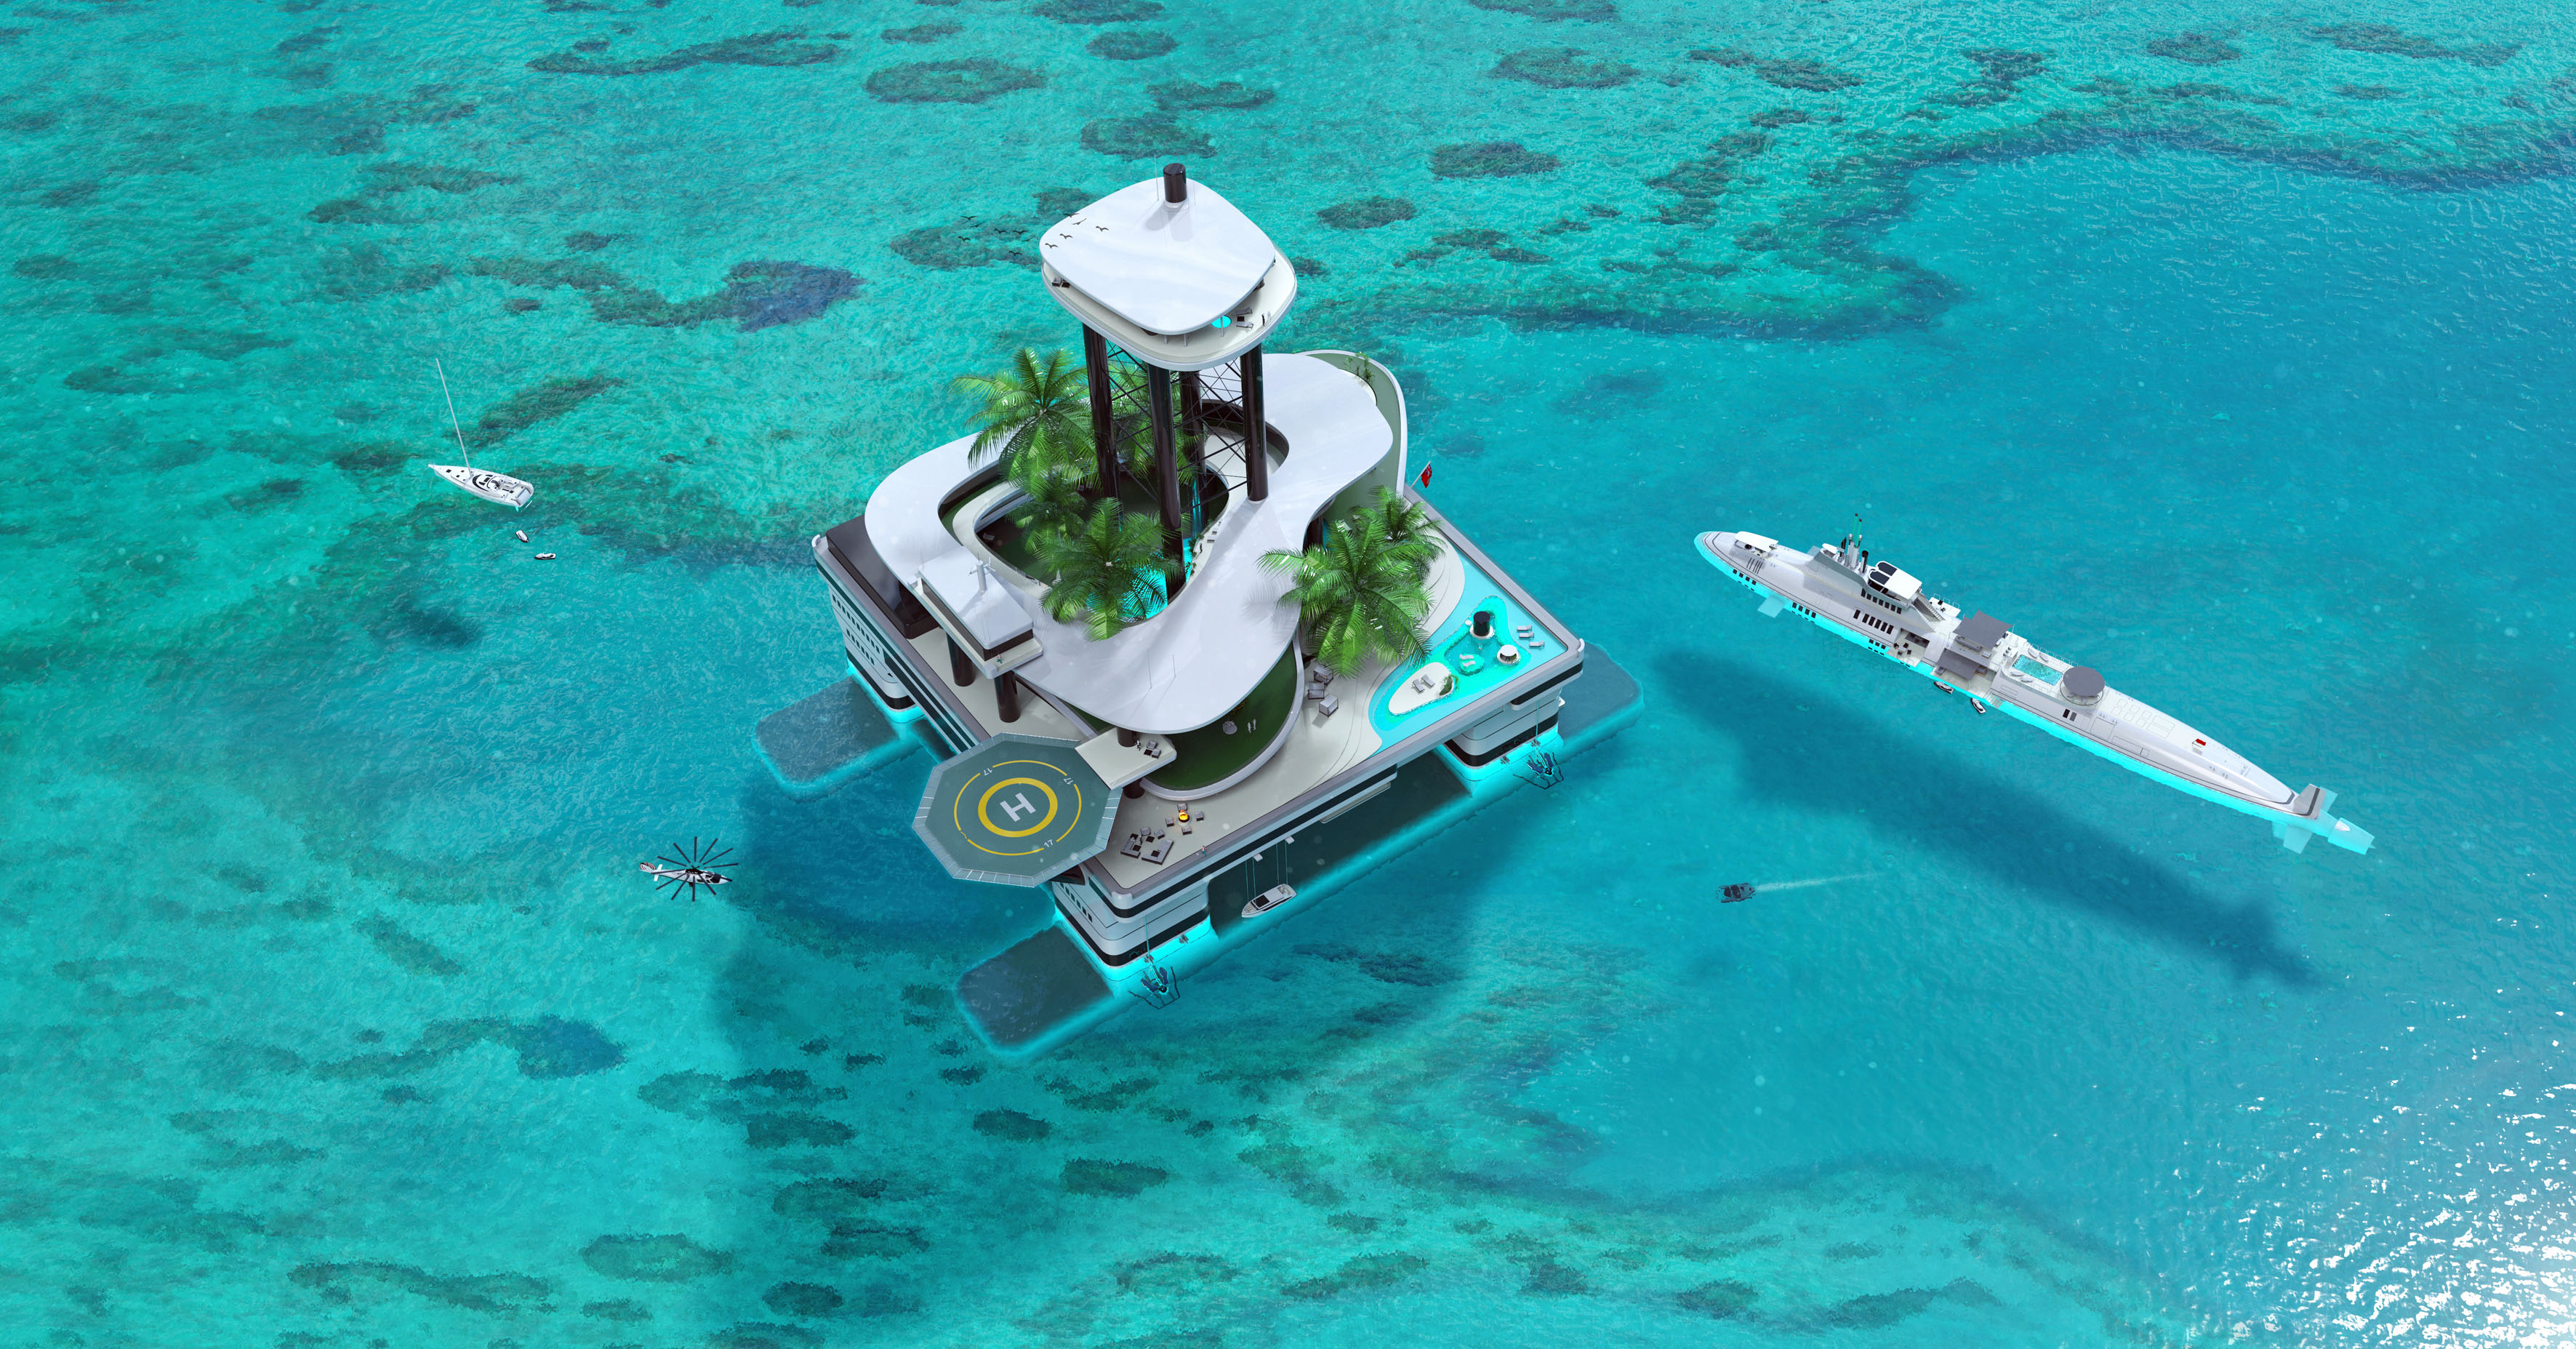 the floating paradise Isla paradiso world featured in: isla paradiso is a world featured in the sims 3: island paradise the town is an archipelago of many islands this town is used to showcase many features of island paradise in its development.